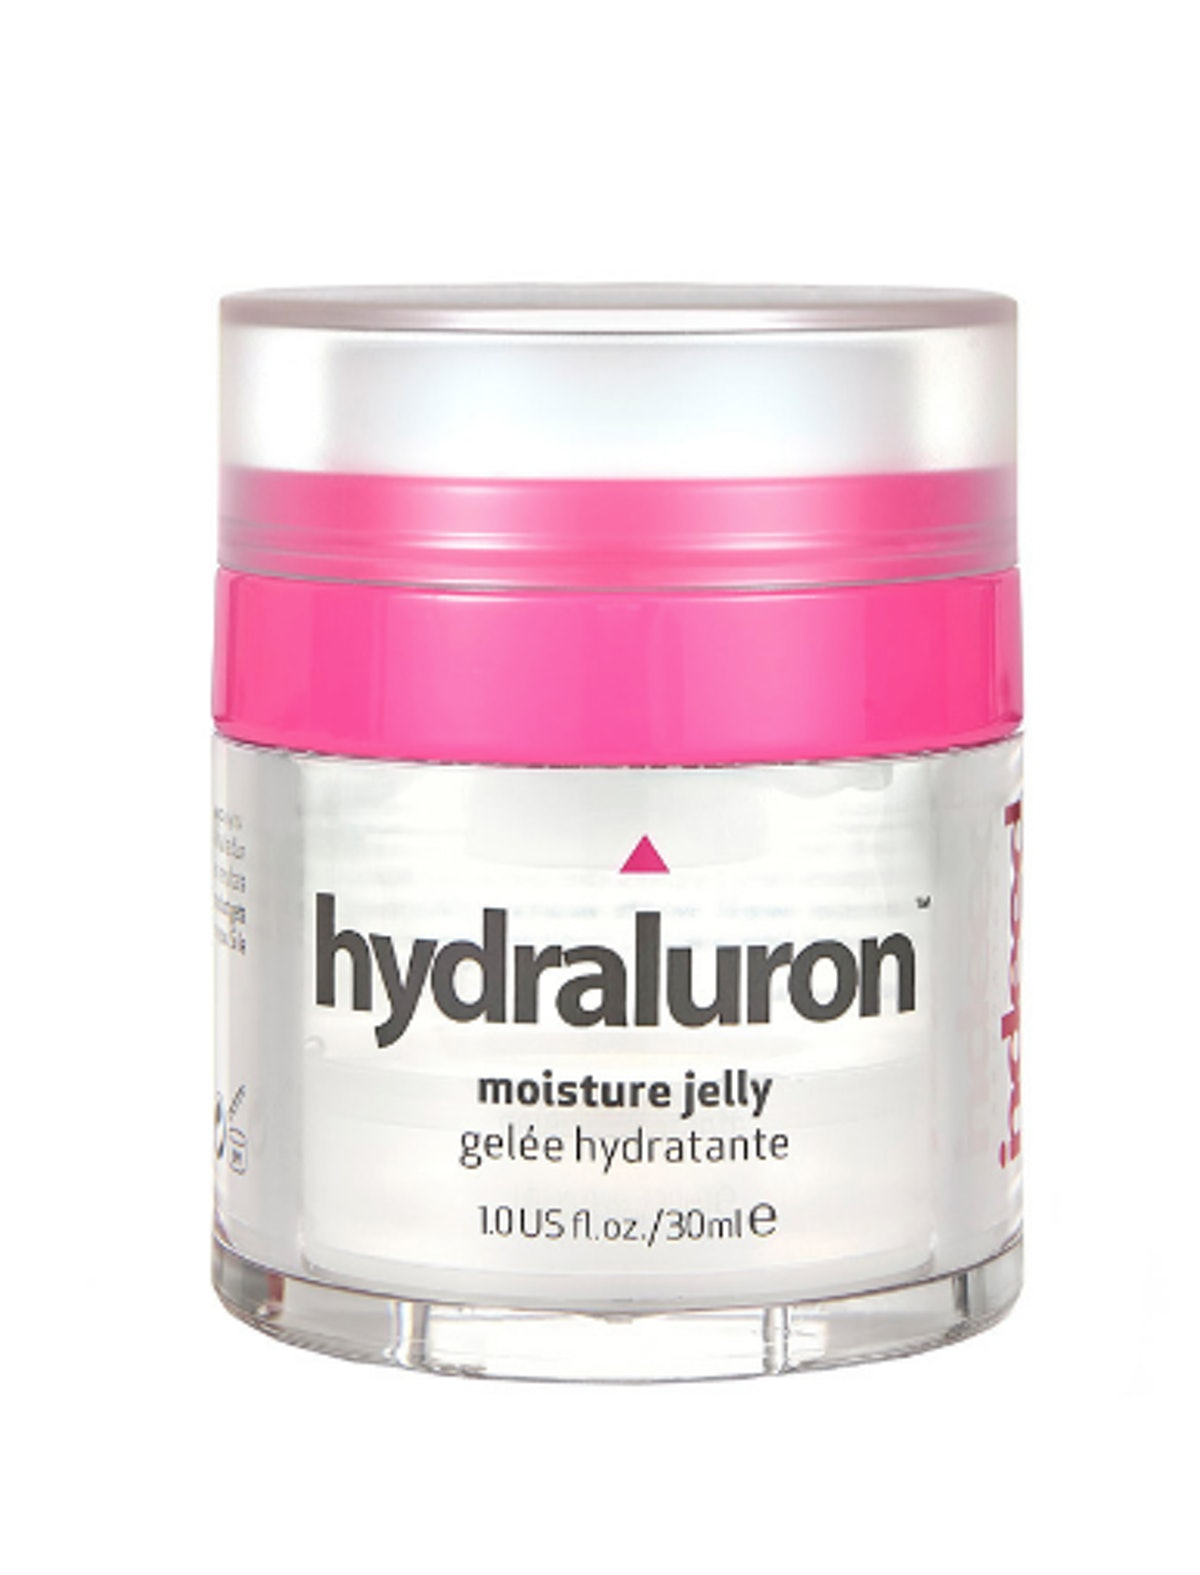 Hydraluron Moisture Jelly Instant and Long Lasting Hydration